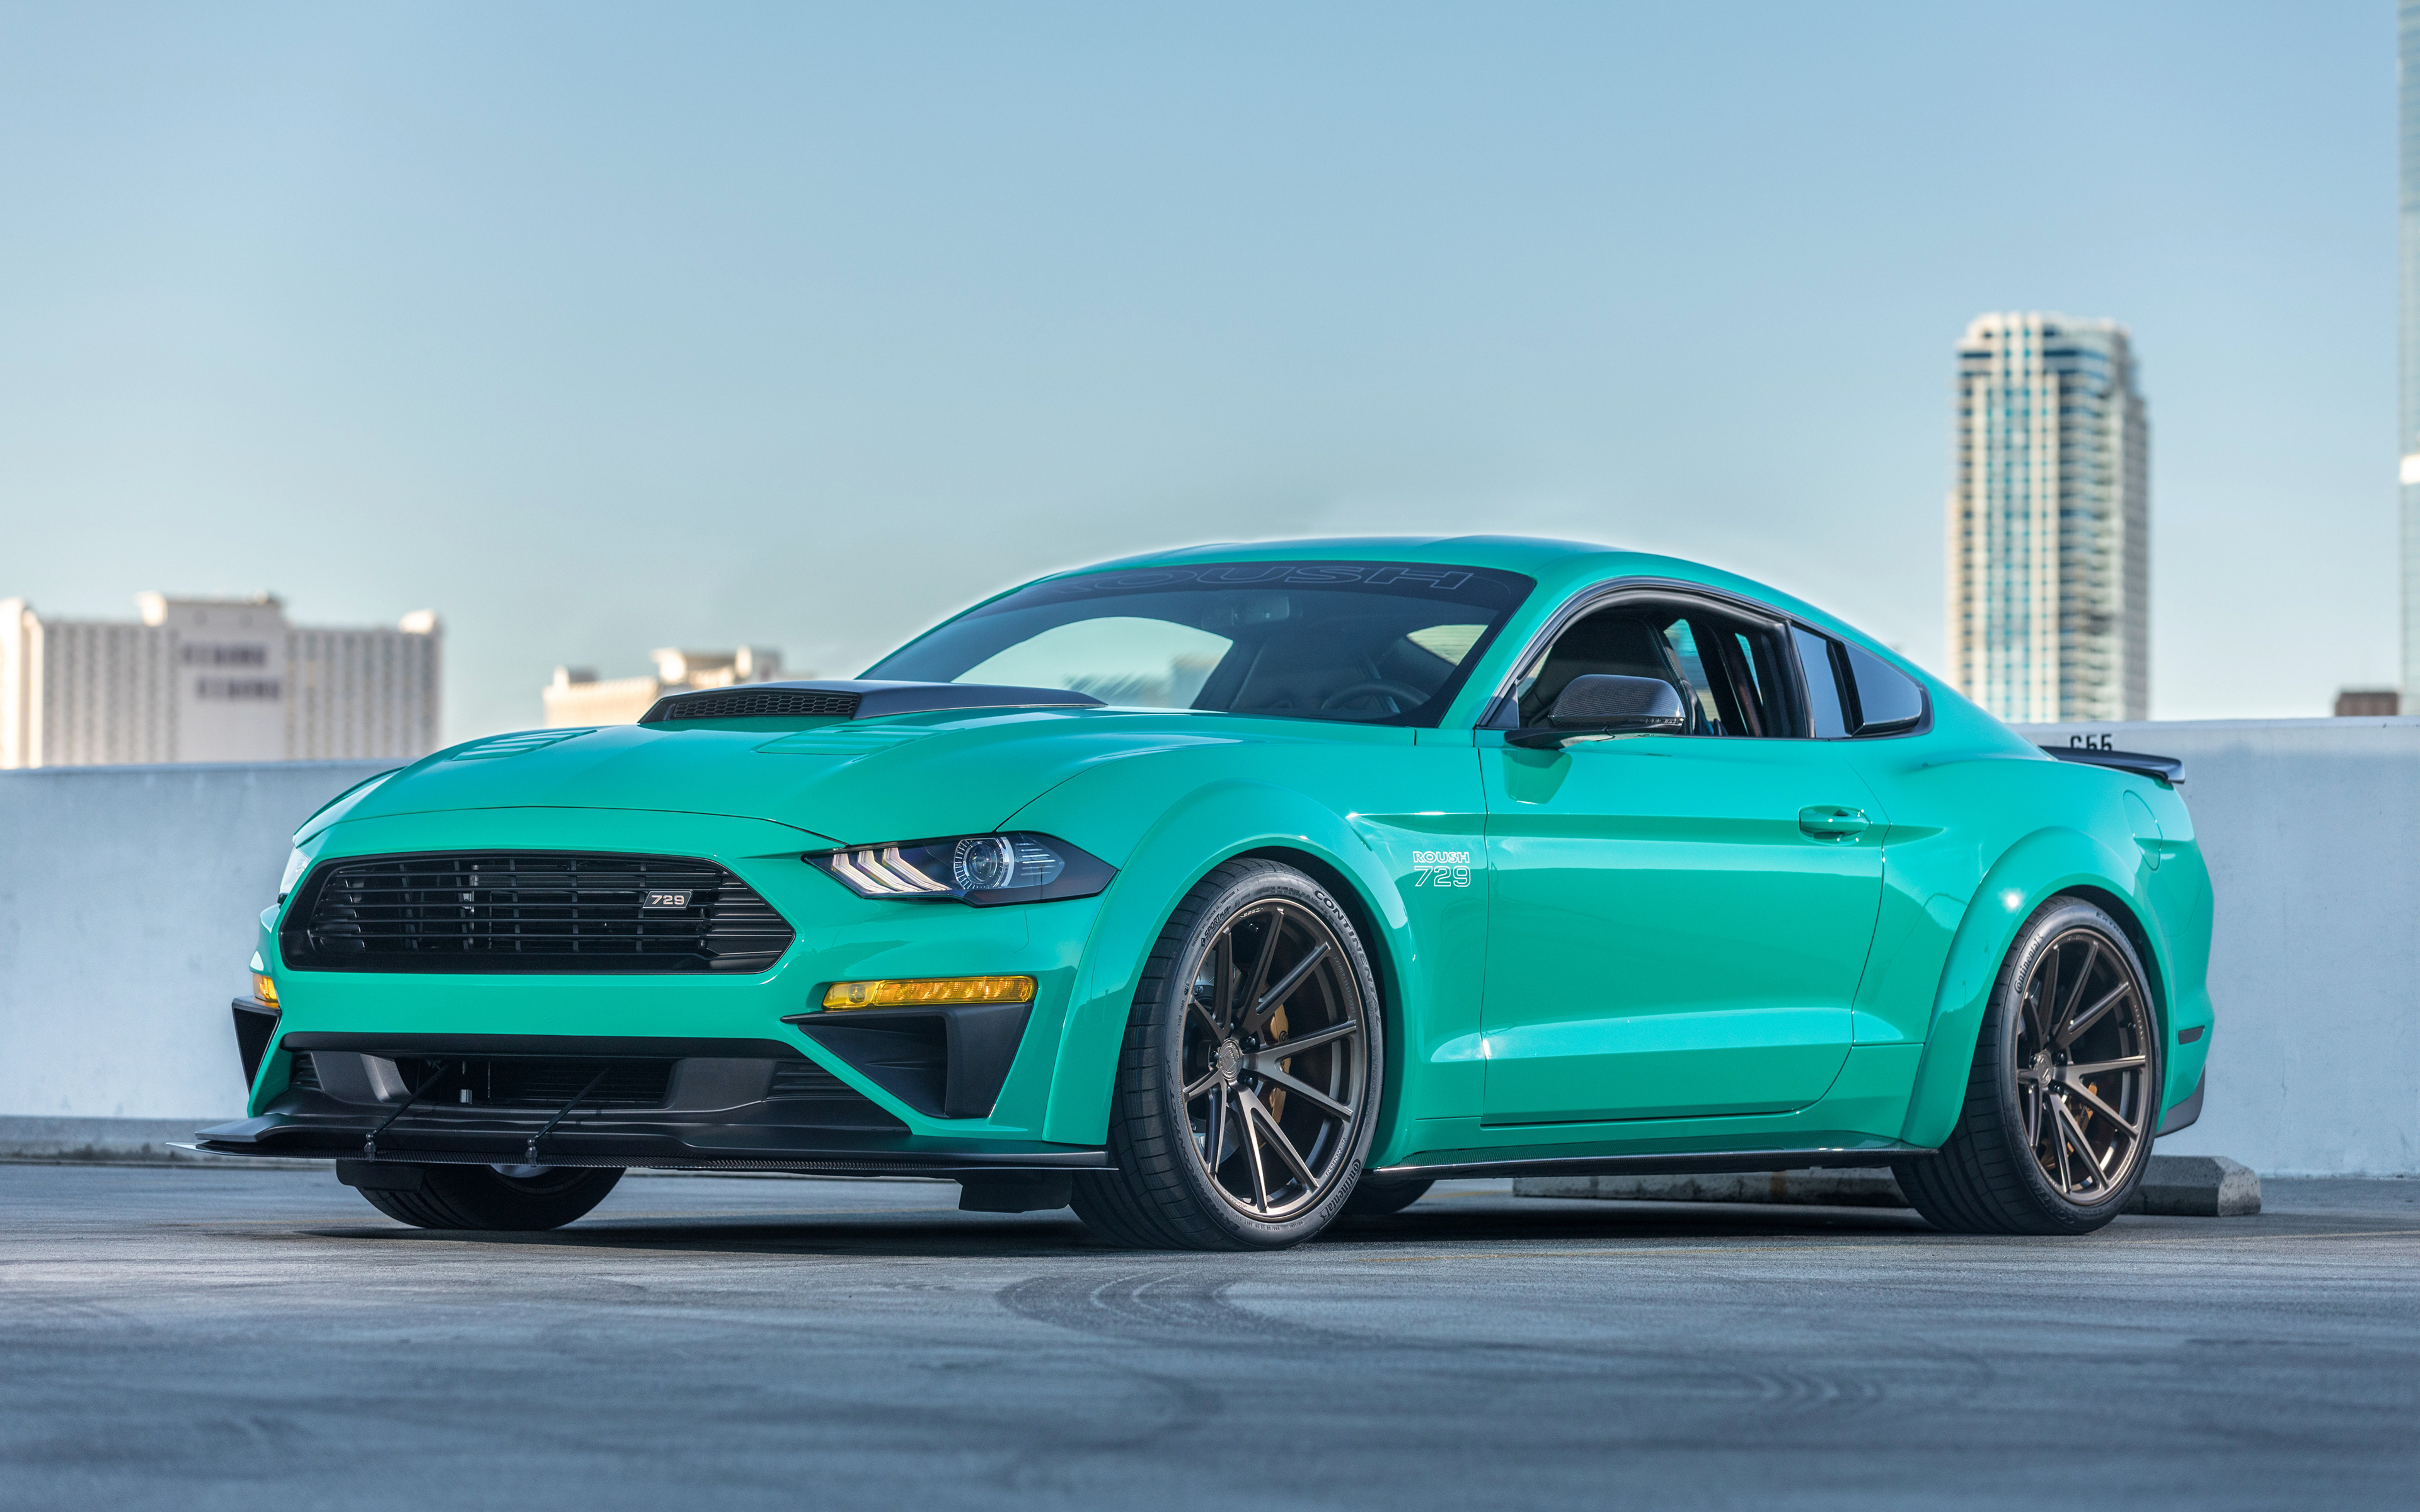 2018 Roush Mustang 729 4K Wallpapers